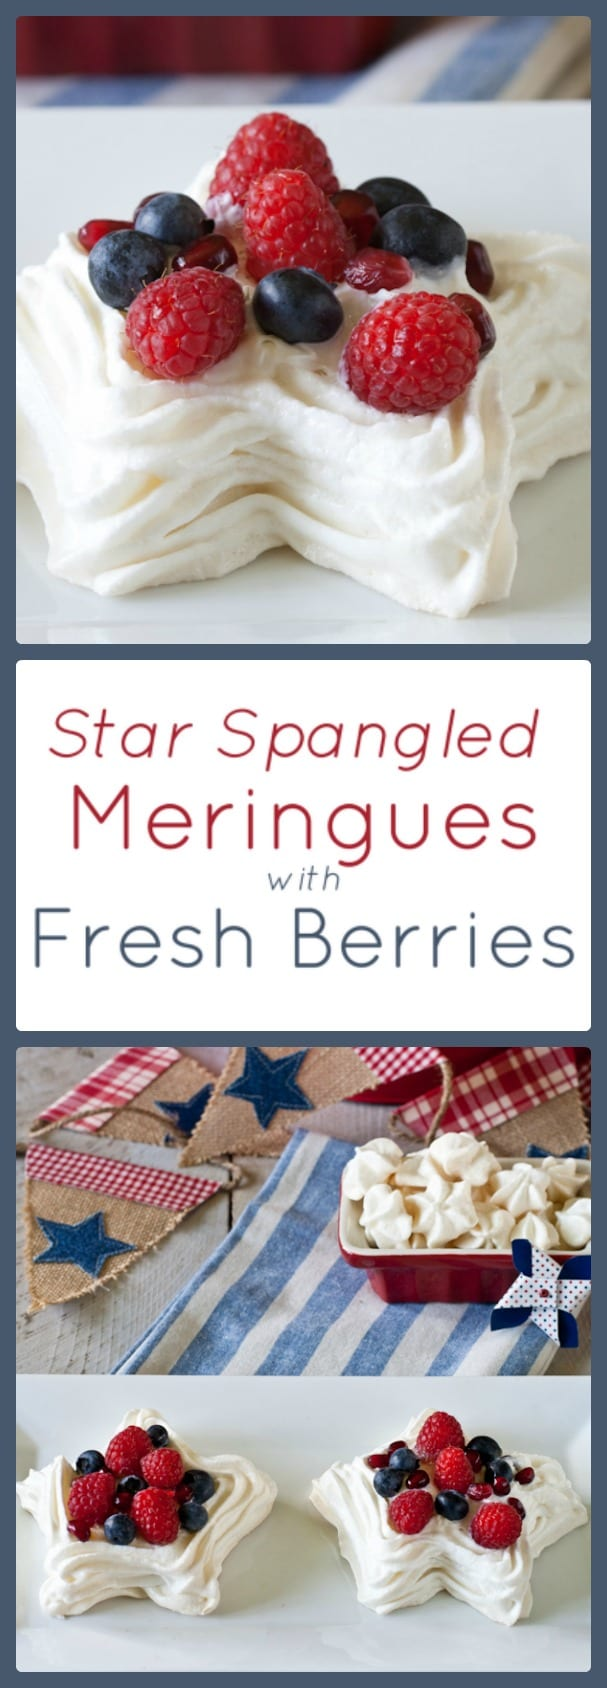 Star Spangled Meringues are filled with fresh berries. They're gluten free!